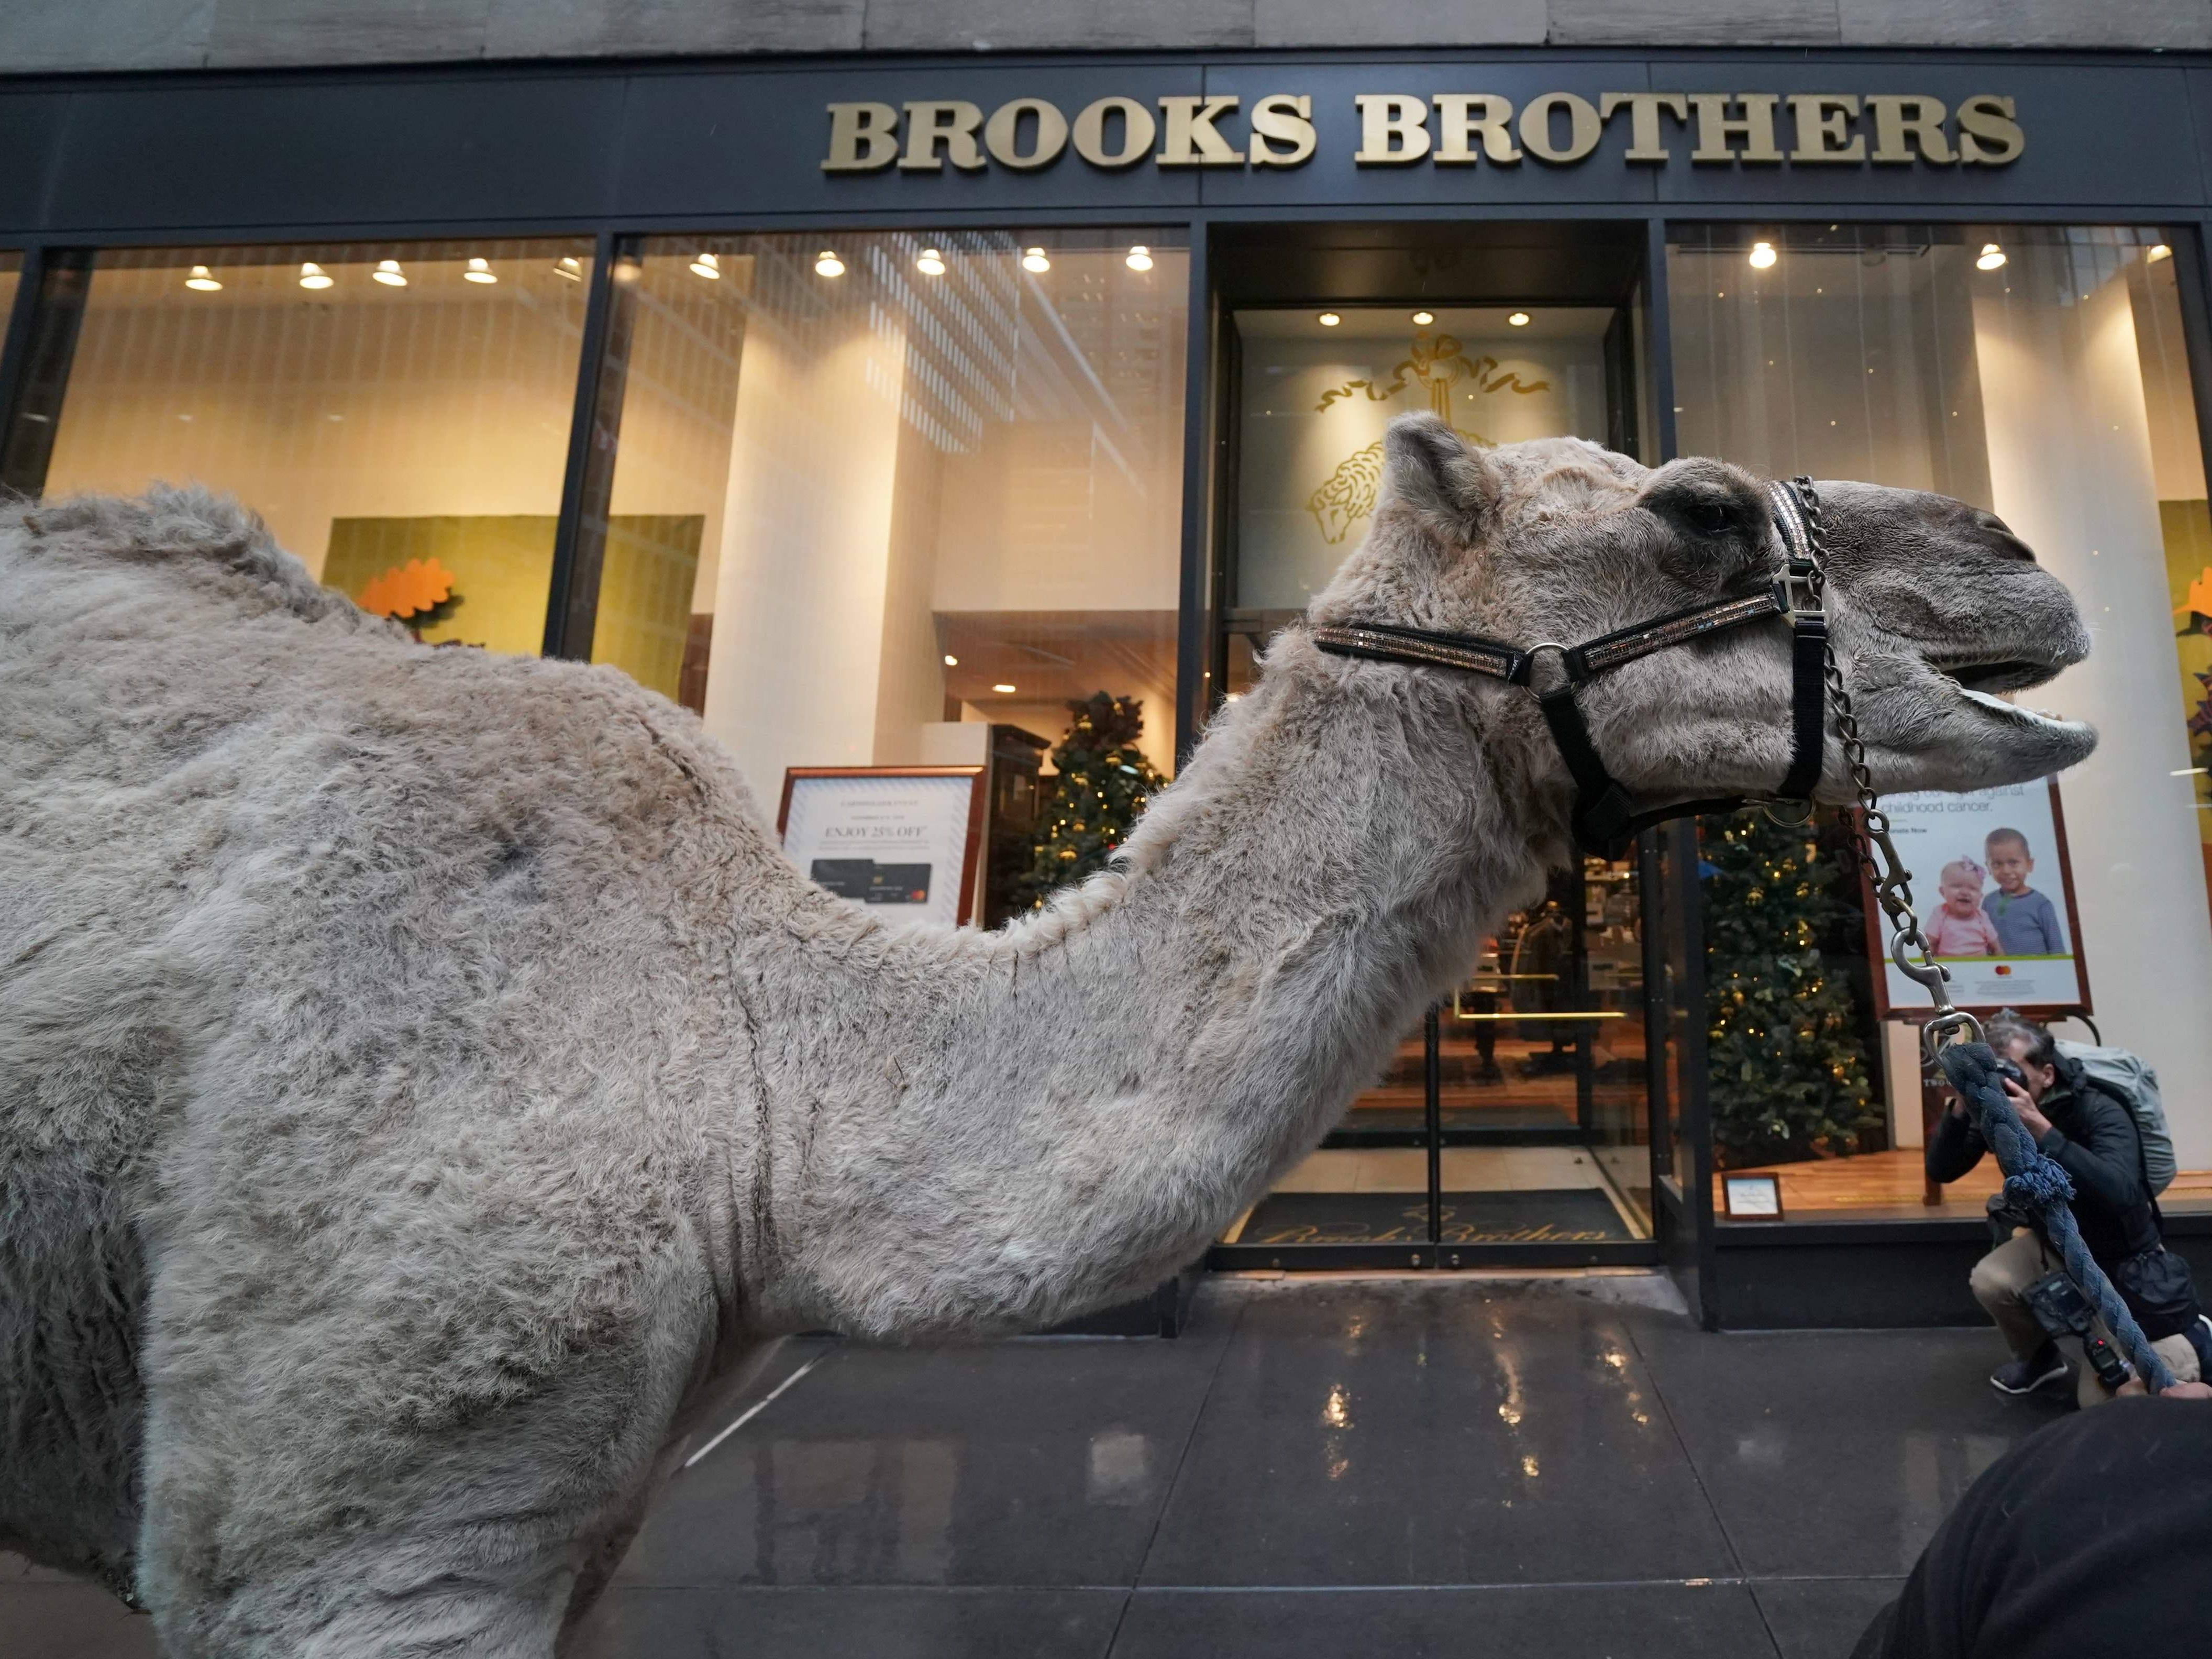 A camel is escorted November 5, 2018 in New York as camels, sheep and donkey are welcomed back to Radio City Music Hall November 5, 2018 in New York for their starring role in the Living Nativity scene of the 2018 production of the Christmas Spectacular. - The Christmas Spectacular starring the Radio City Rockettes, presented by Chase, will run from November 9  January 1, 2019. (Photo by TIMOTHY A. CLARY / AFP)TIMOTHY A. CLARY/AFP/Getty Images